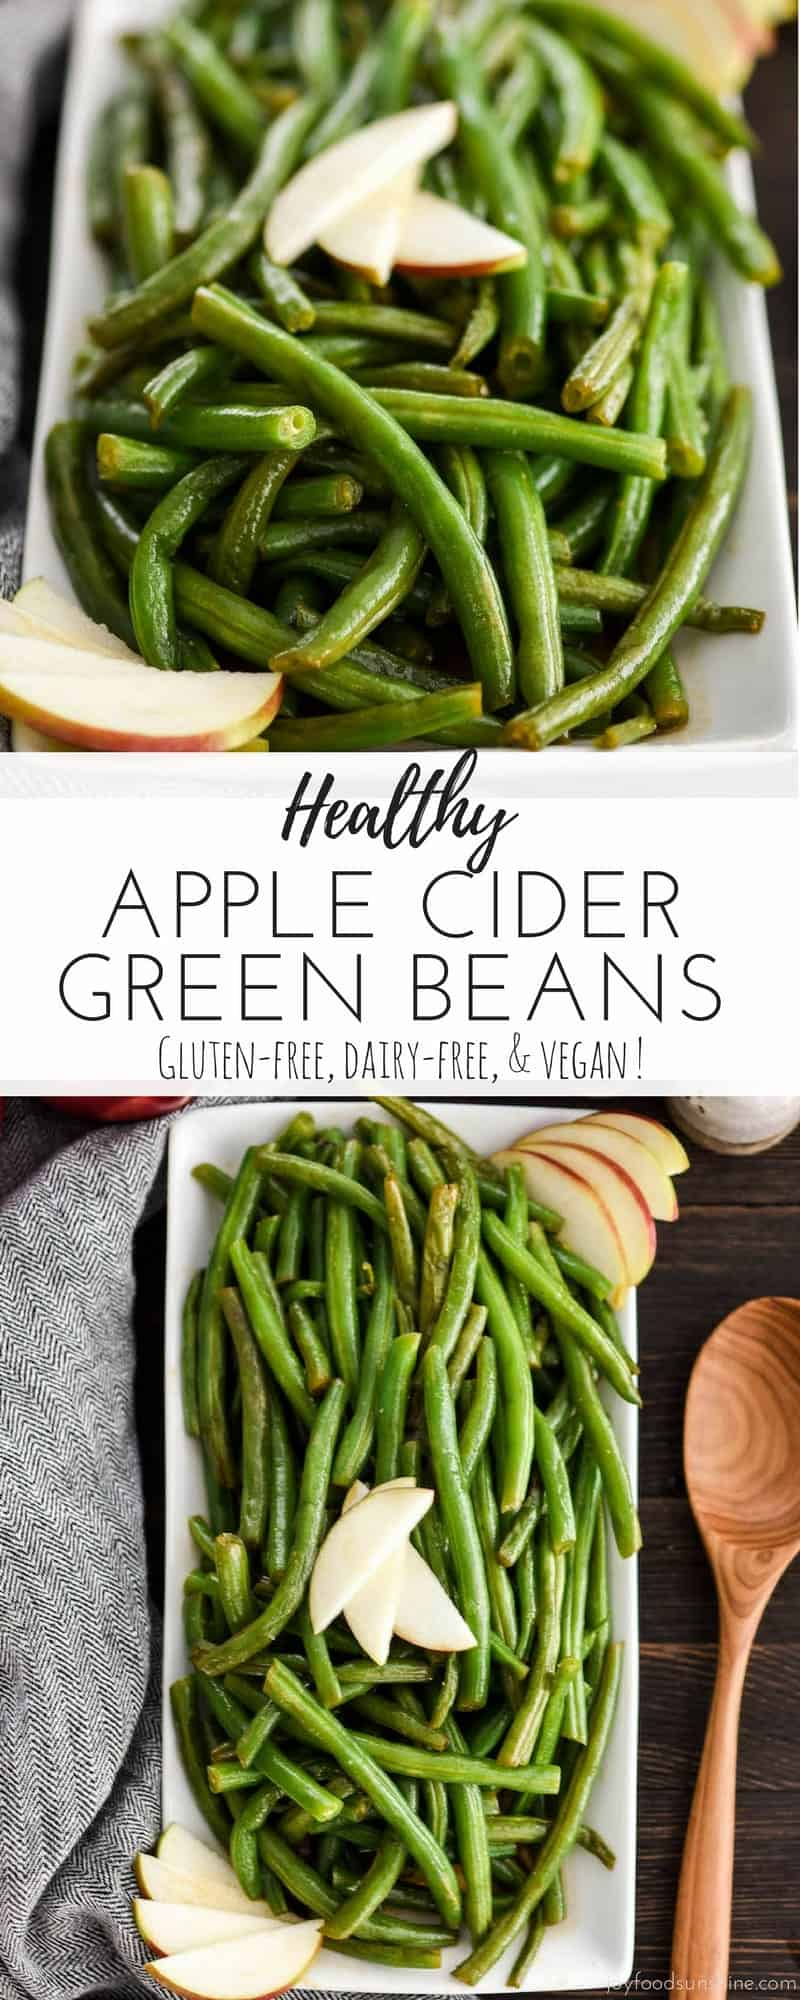 These Apple Cider Green Beans are a delicious Thanksgiving side dish! Made with only 5 ingredients, they're a healthy and easy holiday favorite that everyone will love! Gluten-free, dairy-free, vegan, paleo-friendly!